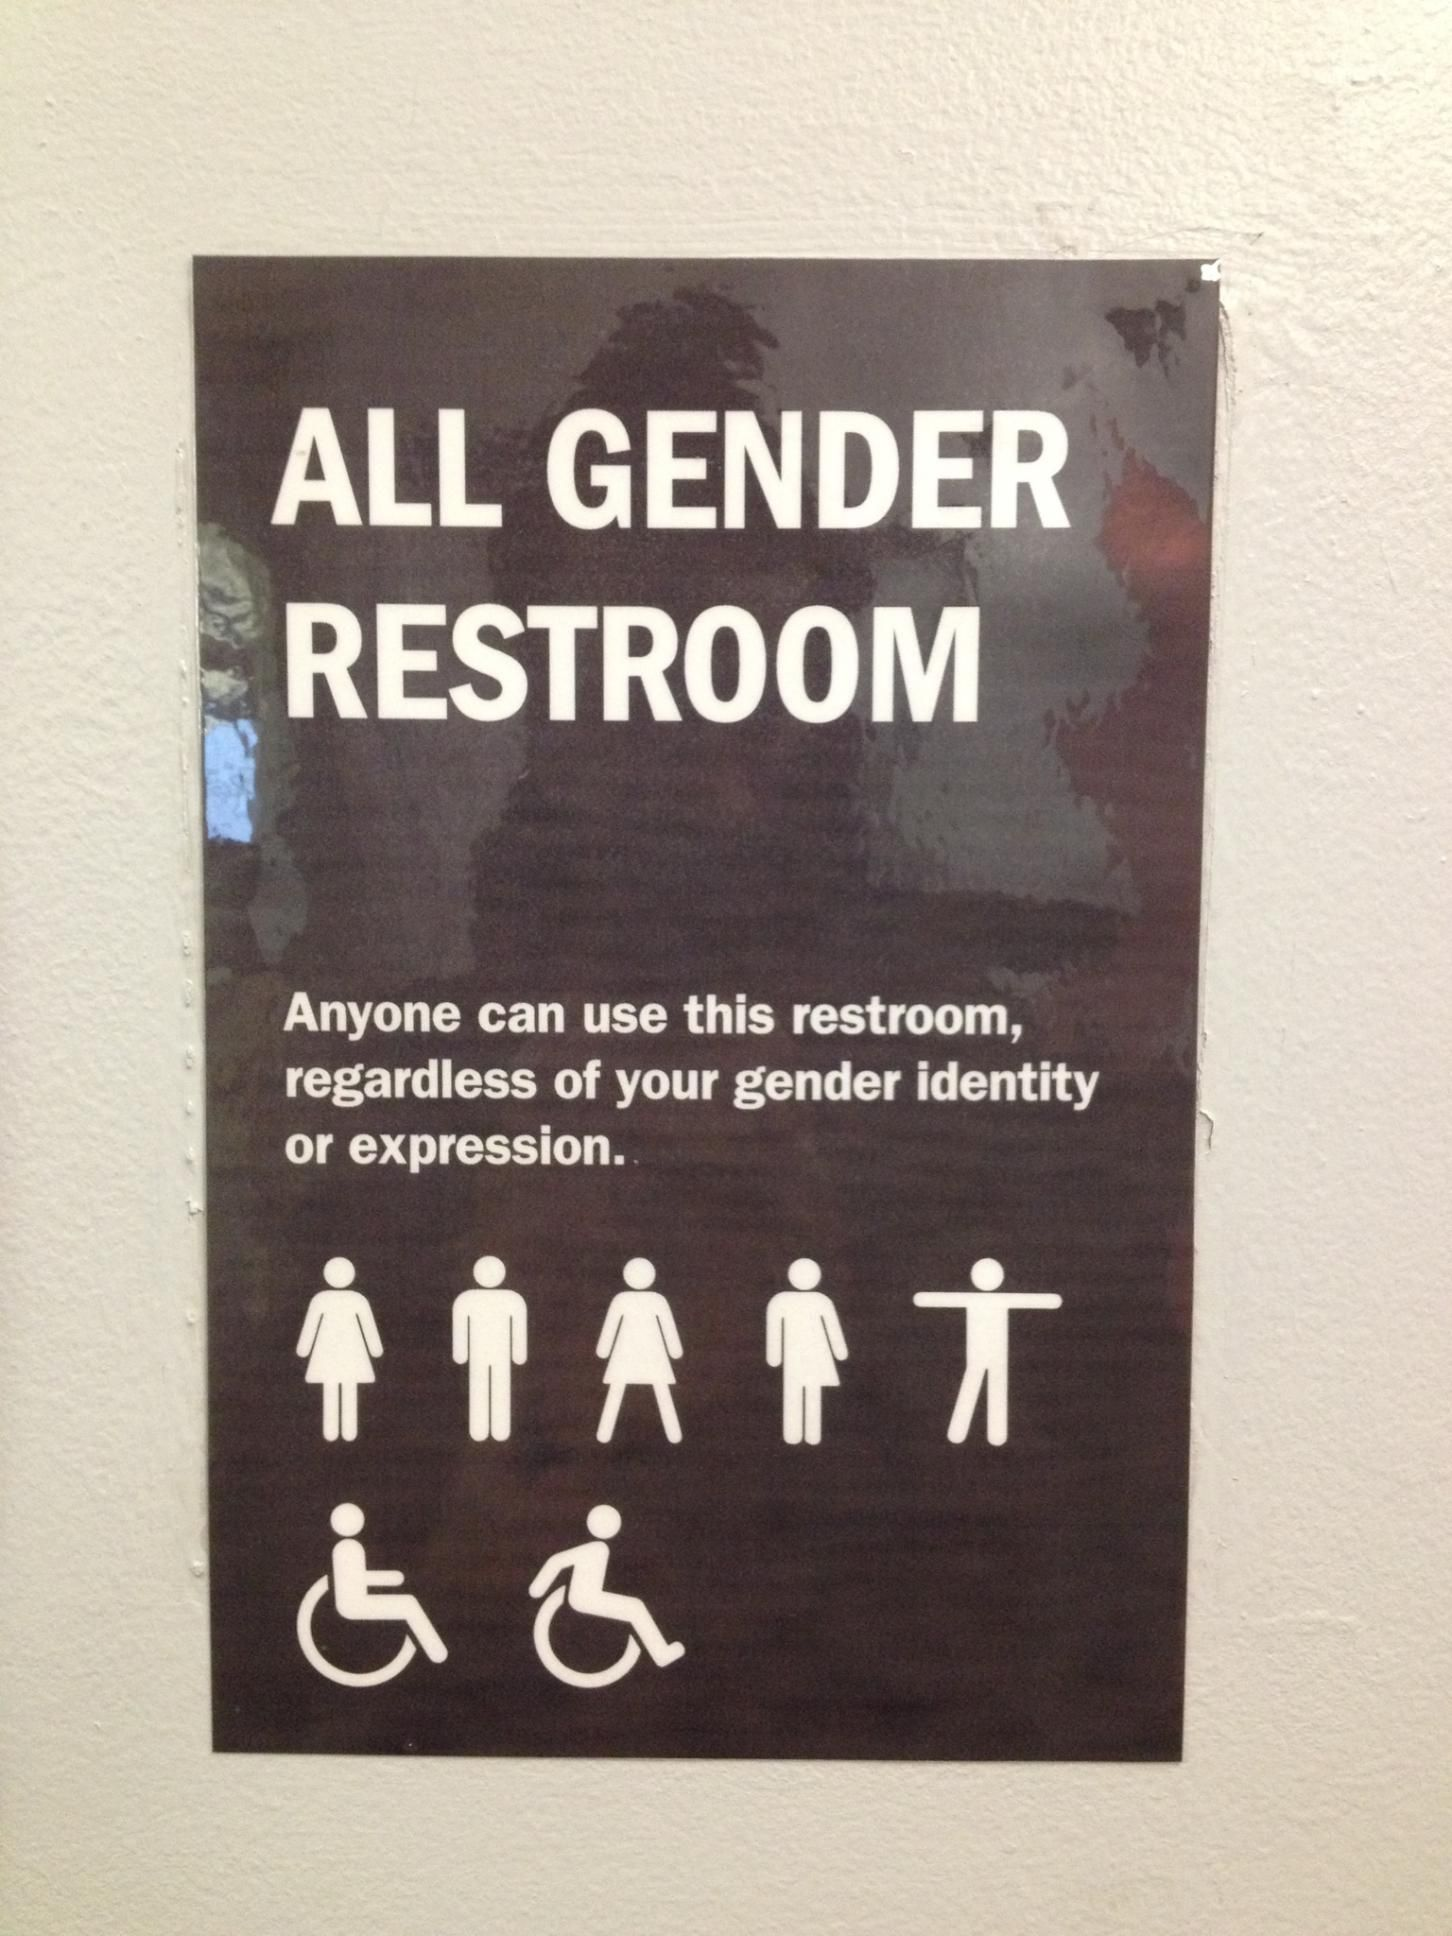 Many Of These Bathroom Signs Are Beginning To Pop Up Across America It S Helping To Break Down The Binary All Gender Restroom Gender Gender Neutral Bathrooms